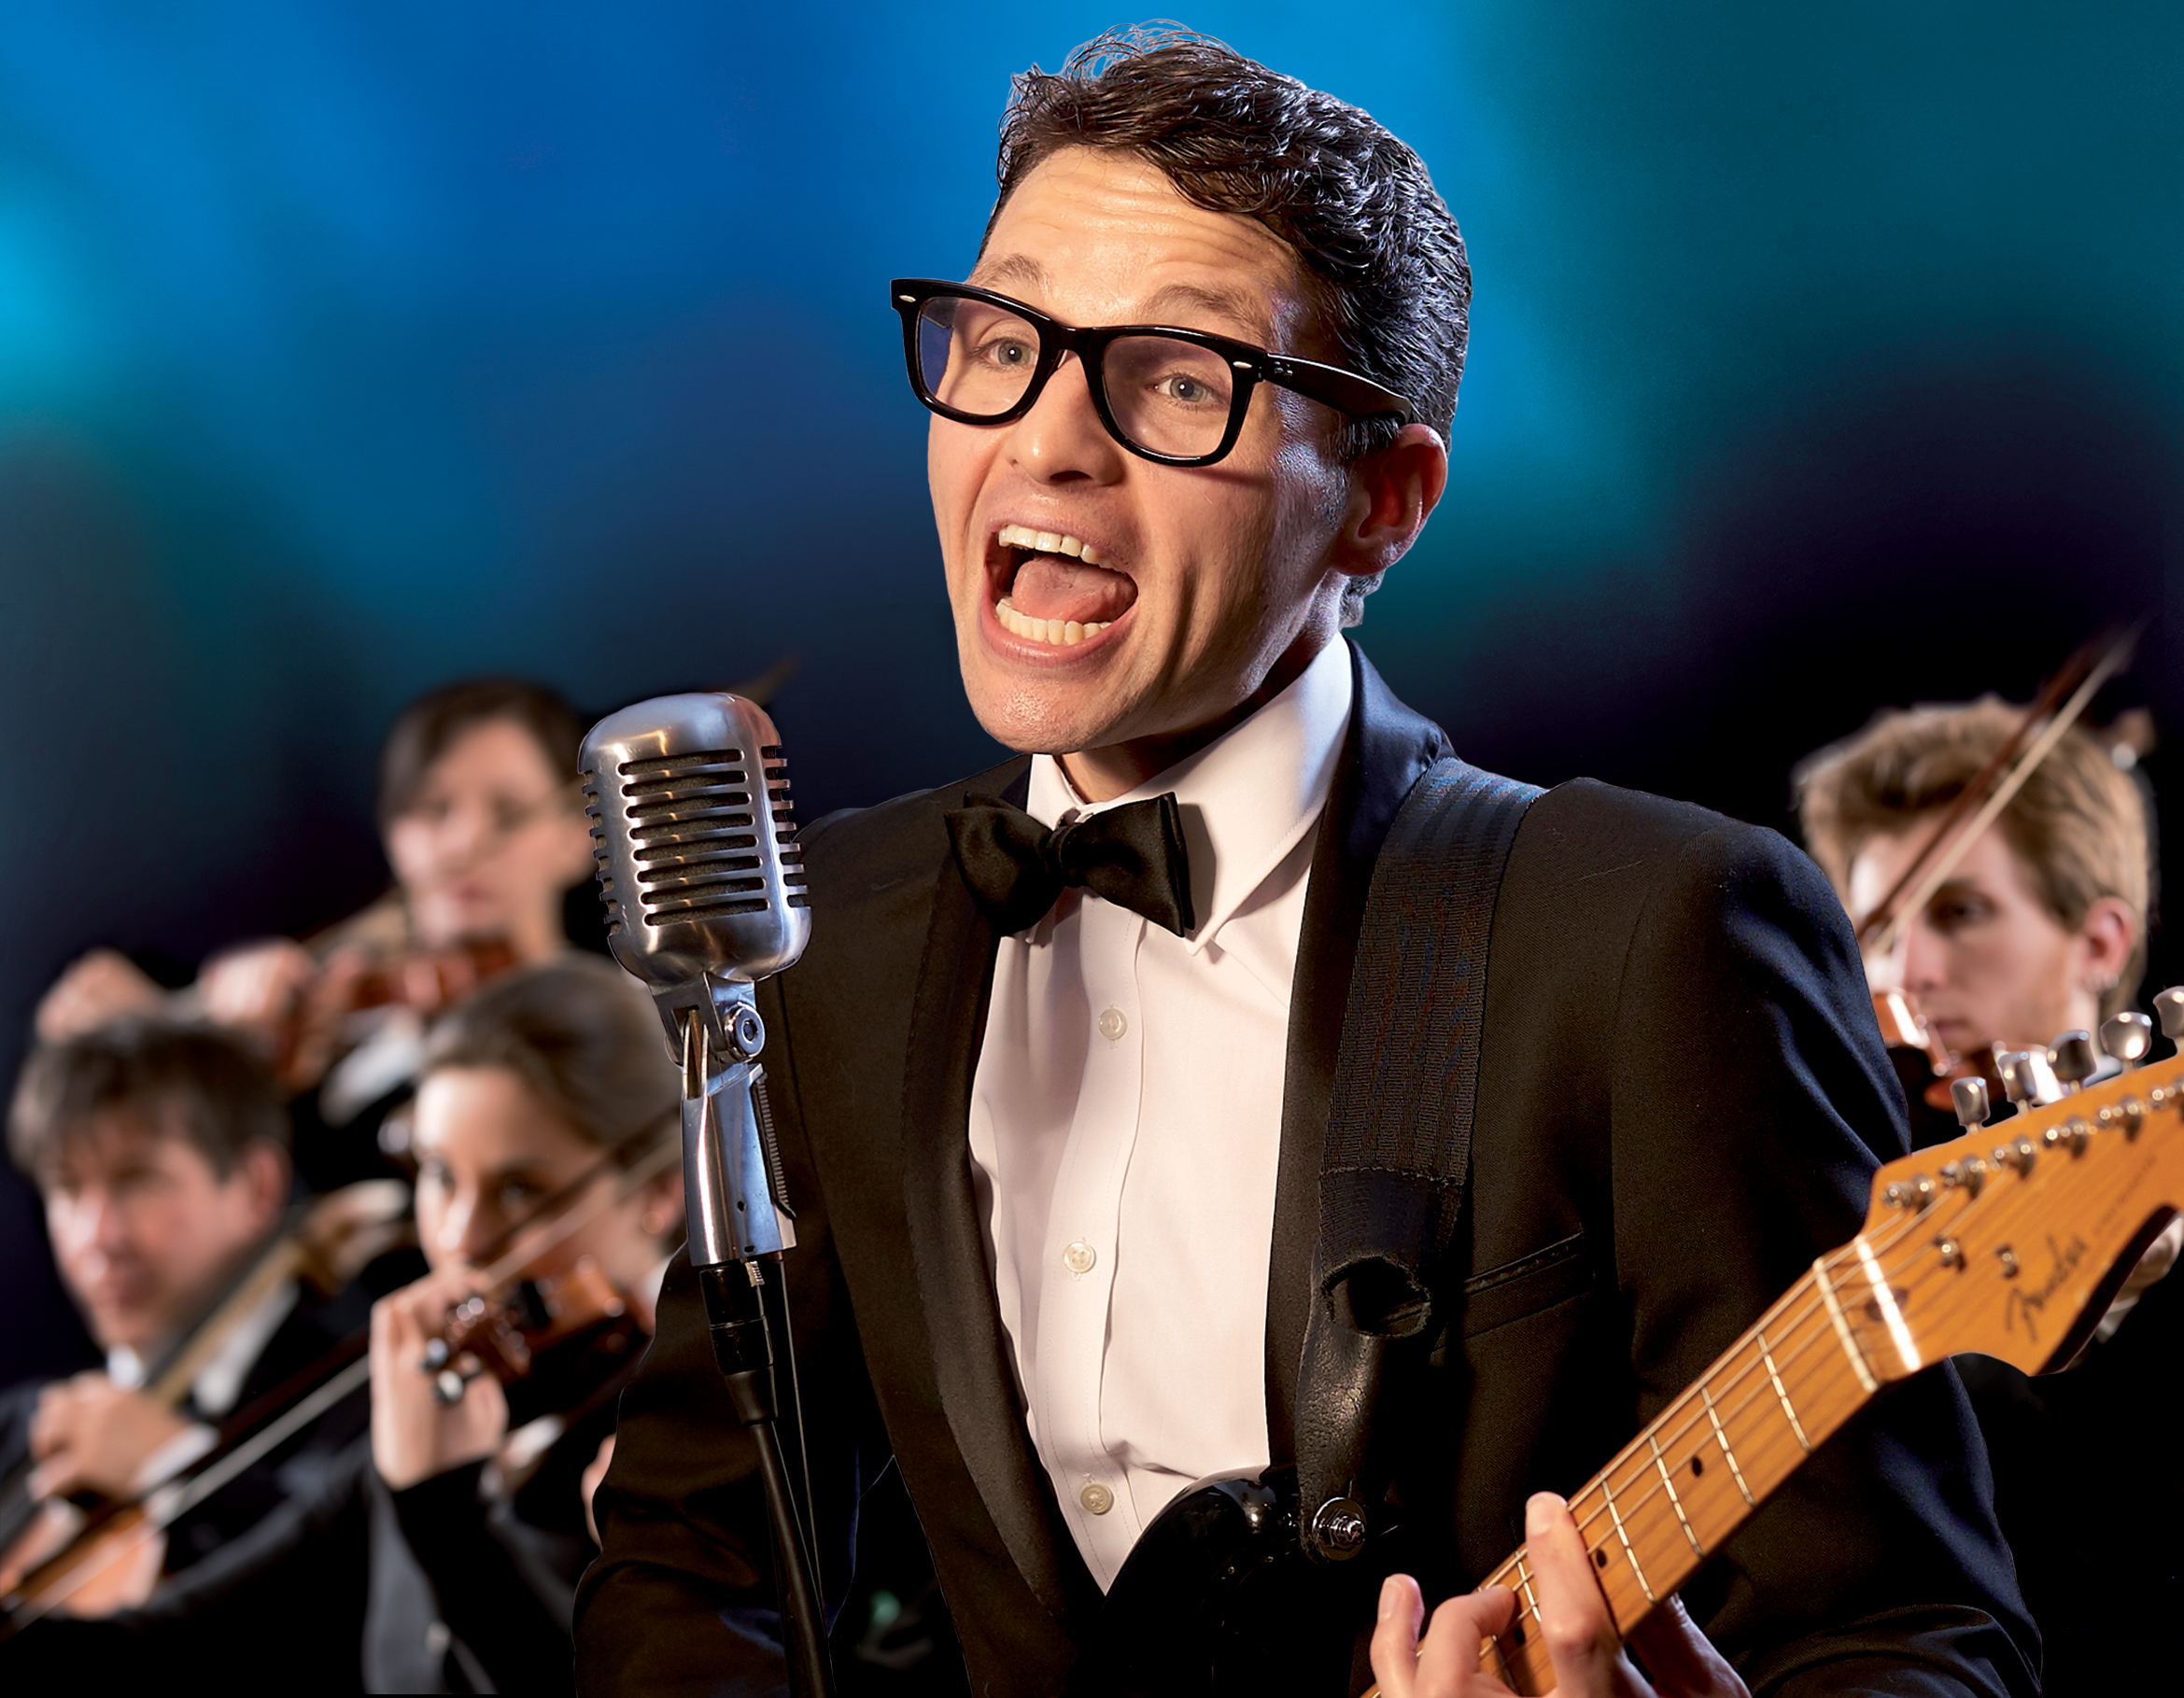 Buddy Holly and The Cricketers take to the stage at Richmond Theatre in March